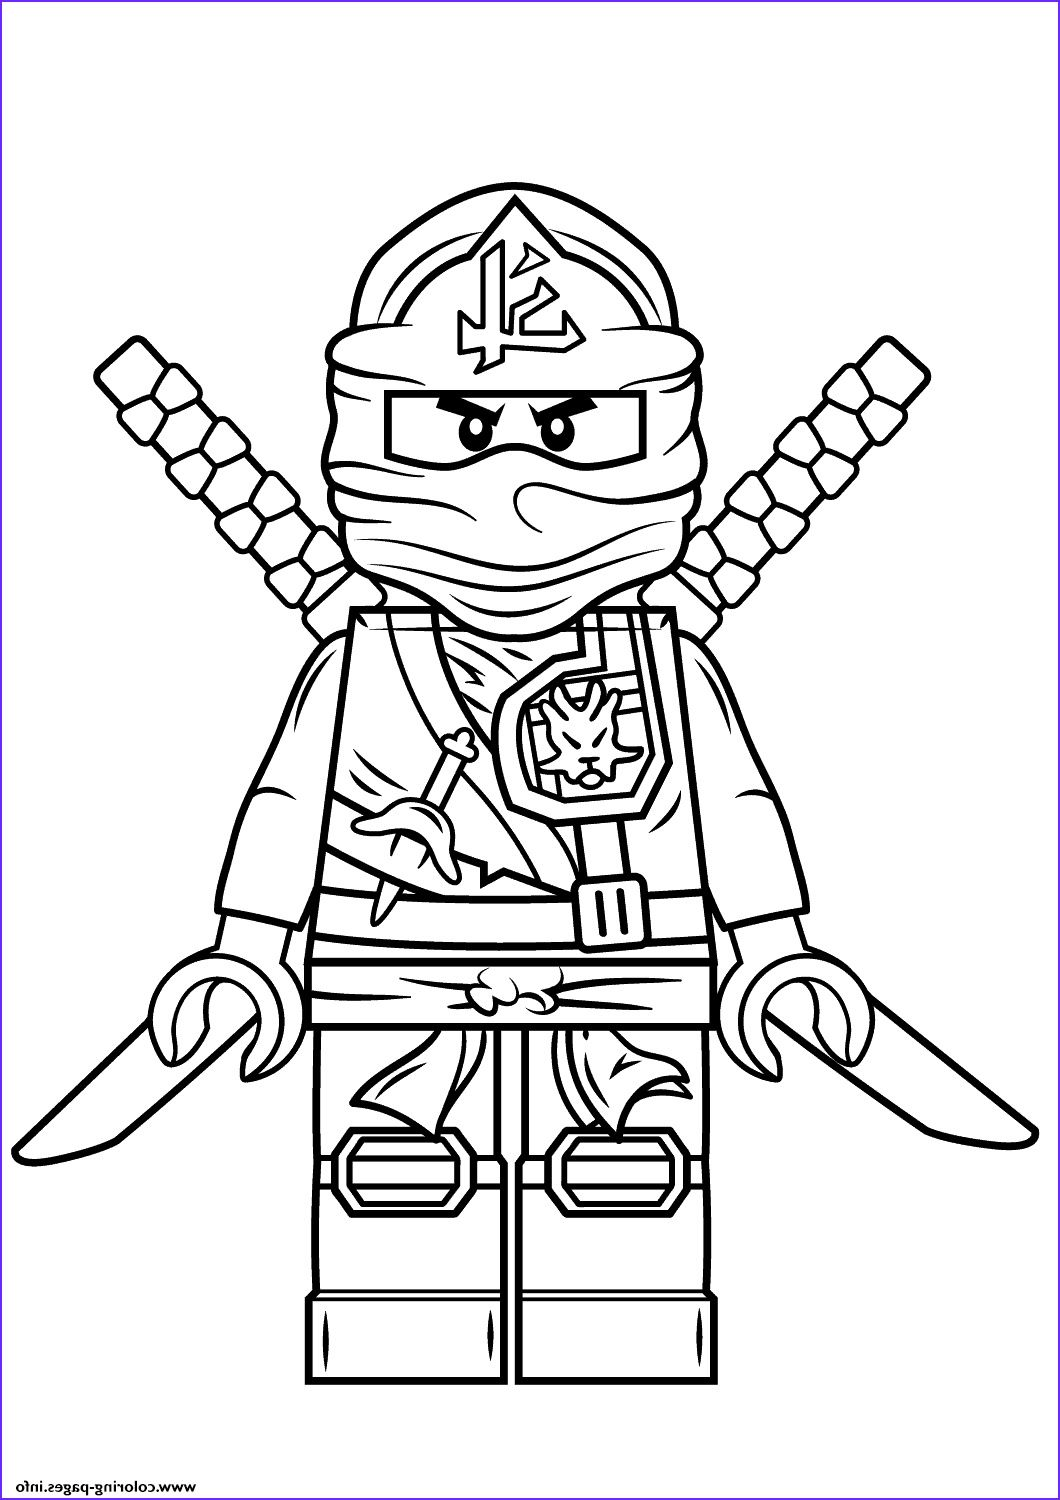 Print Lego Ninjago Green Ninja Coloring Pages In 2020 Lego Coloring Pages Ninjago Coloring Pages Lego Coloring